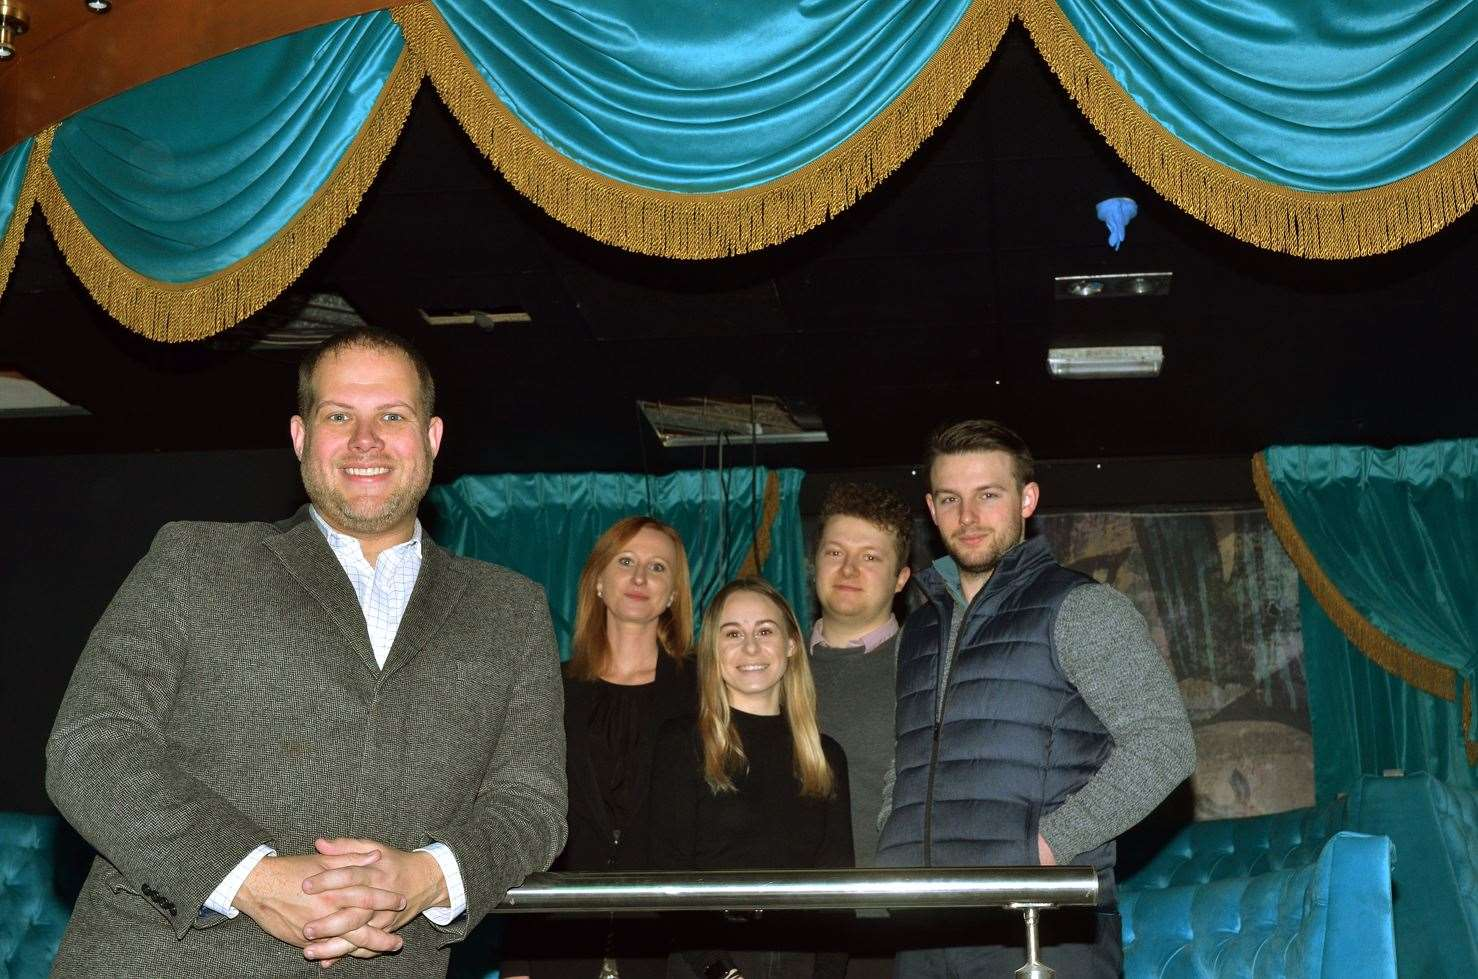 Matt Clark, director of Activ Leisure which owns the renamed XO (formerly Loaded) Nightclub in Spalding, with Activ Leisure staff Gosia Geraghty, Genevieve Rosenberg, Jake Harrington and Daniel Hawkey-Smith. Photo by Tim Wilson. SG0080319-029TW